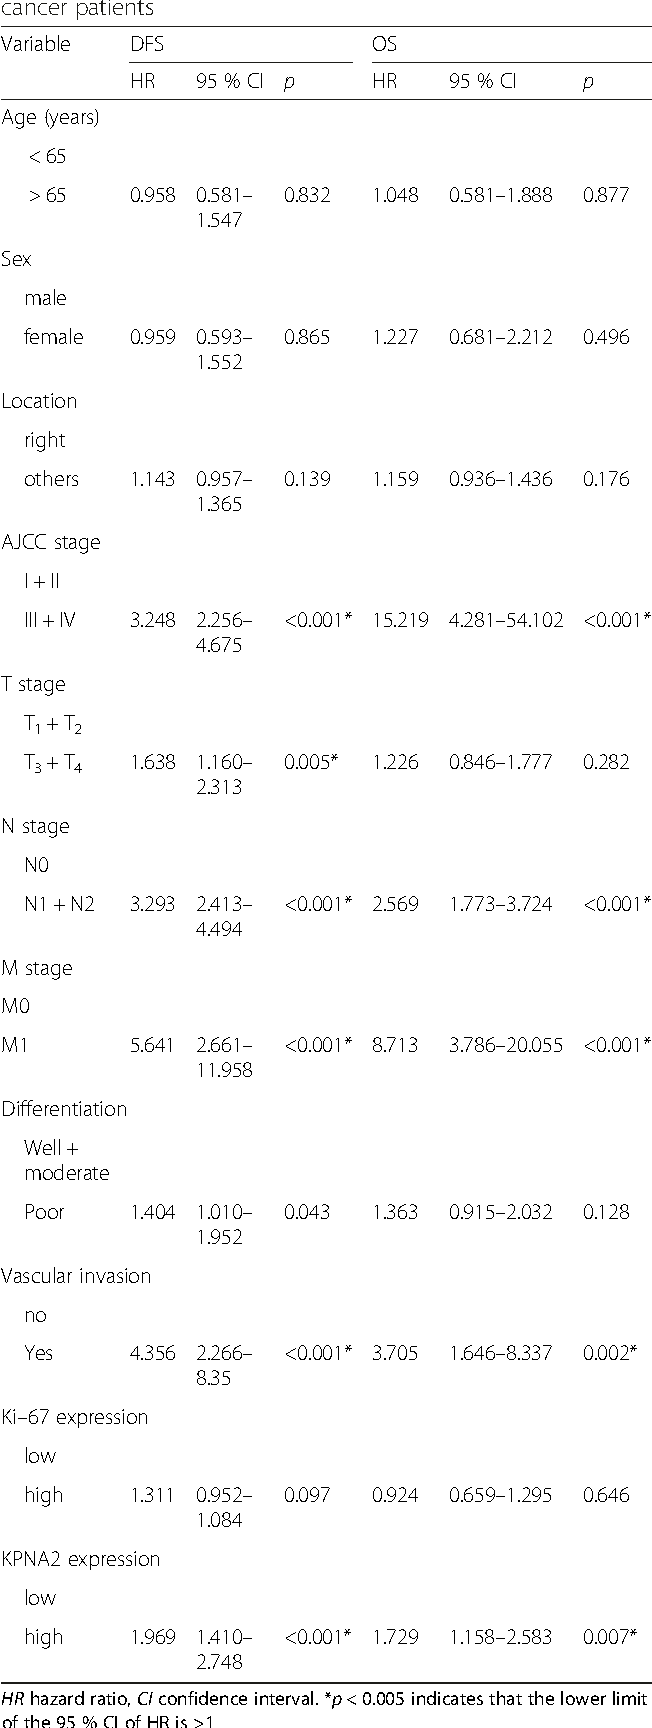 Table 3 Univariate analysis of the DFS and OS in 195 colon cancer patients